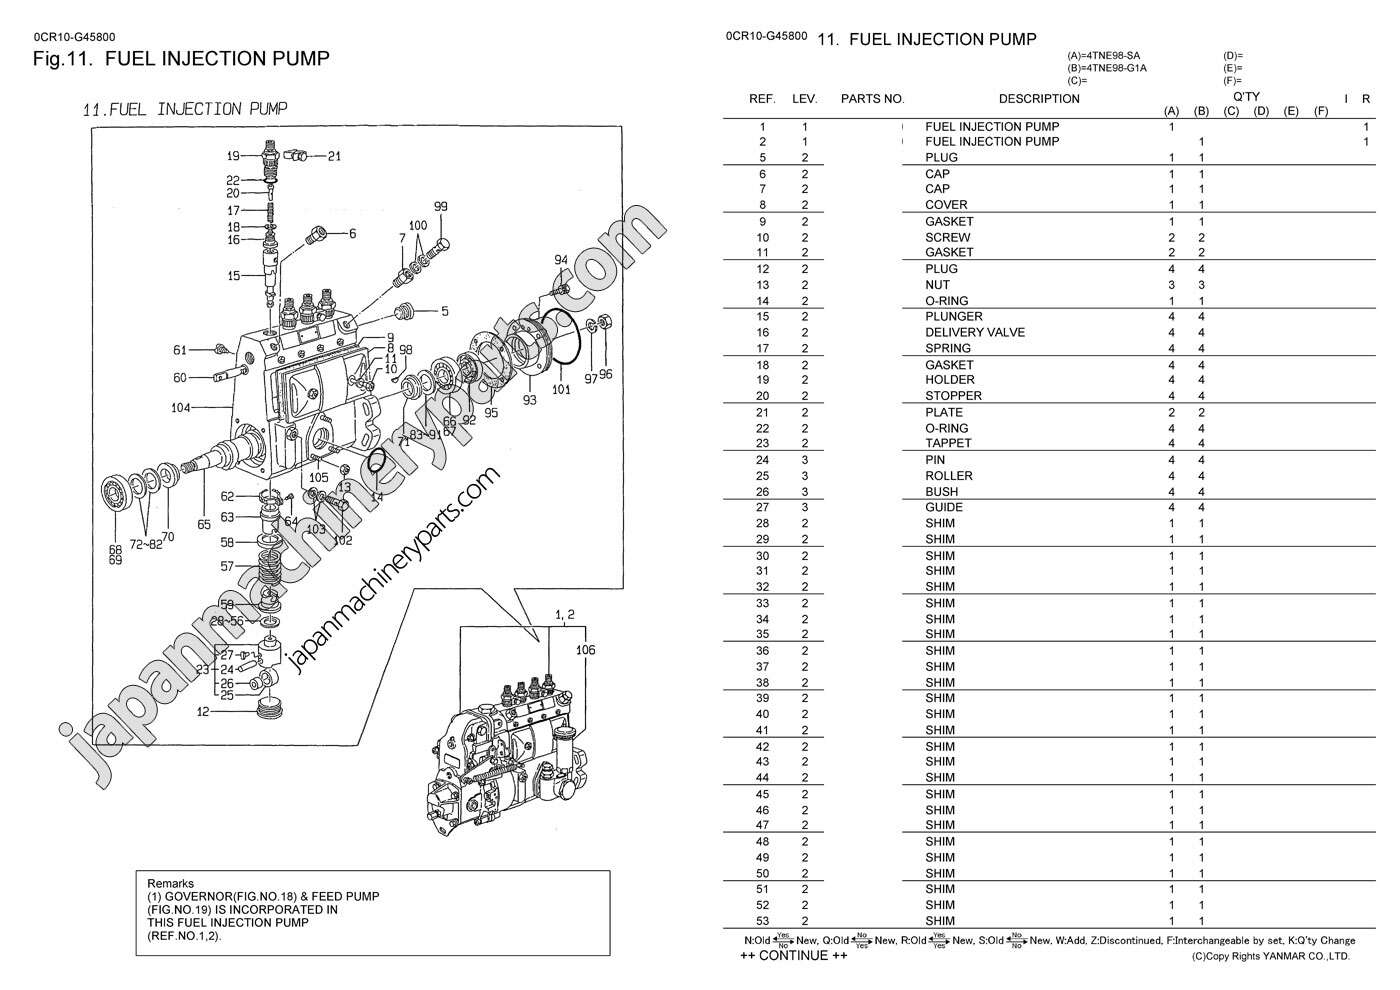 6699_1400x0_aed Yanmar Gm Engine Wiring Diagram on exhaust elbow, raw water impellers, injector puller, prop shaft coupler, marine starter, metal fuel line, engine identification, sea water pump, model 11889 parts list,